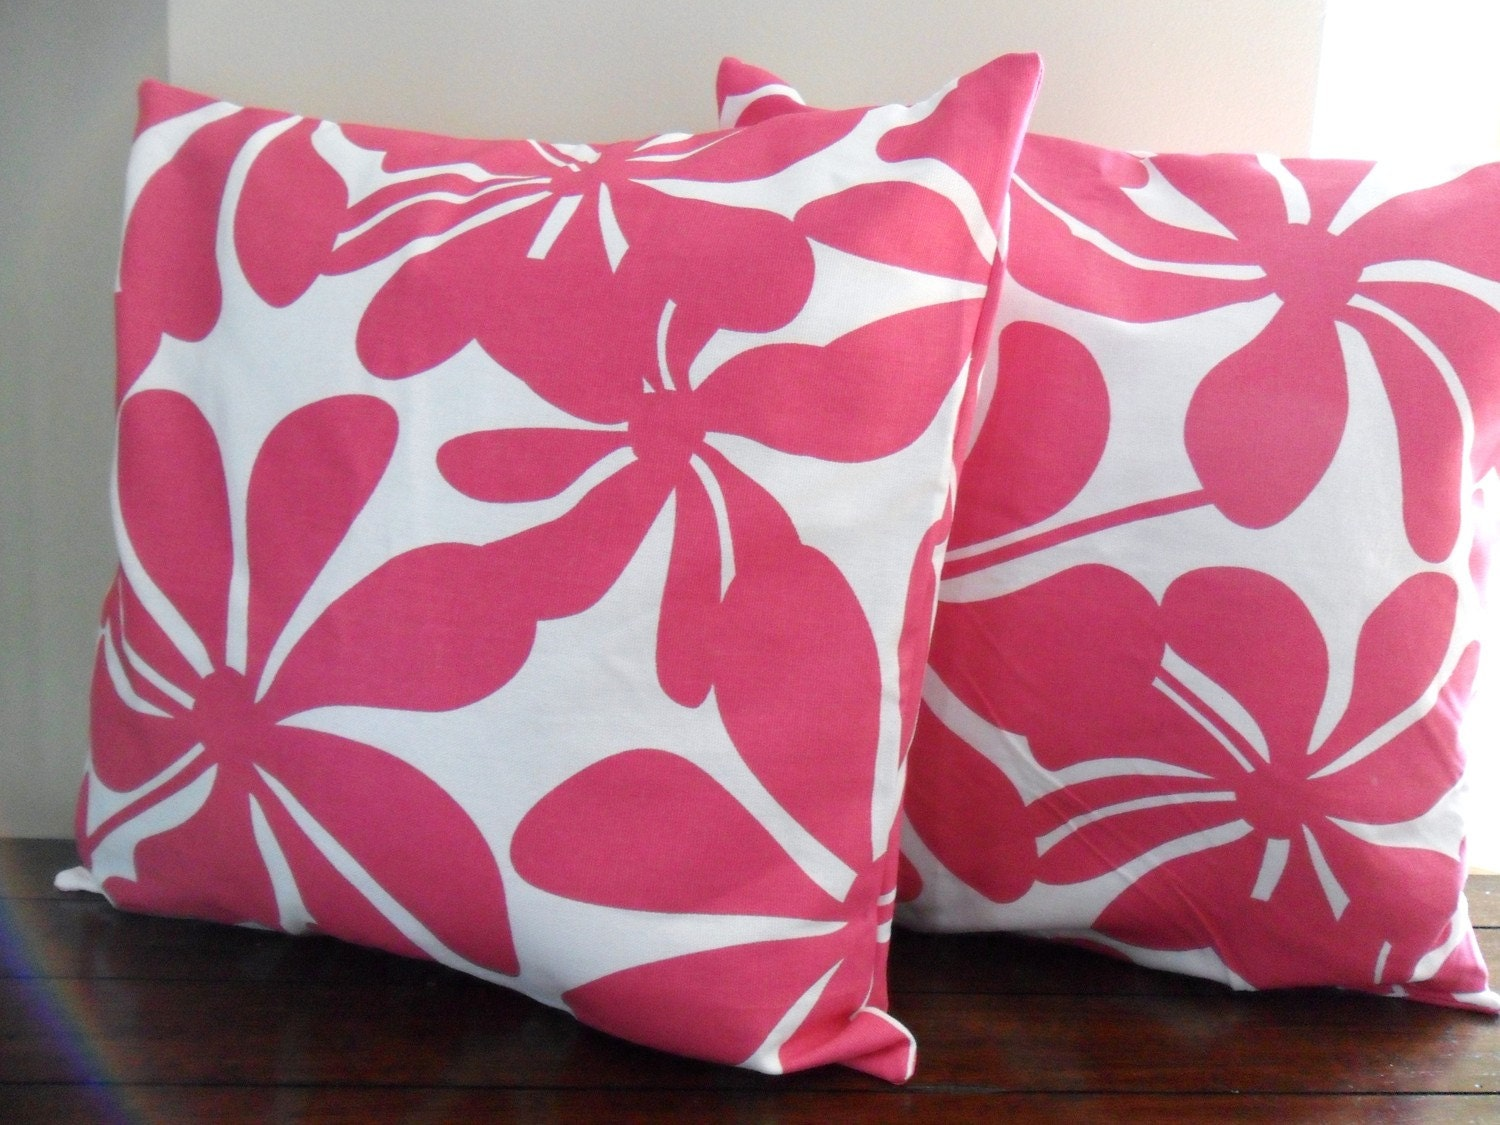 Mod Hot Pink and White Pillow Cover 16x16 - Set of 2 - Designer Fabric - Throw Pillow - Accent Pillow